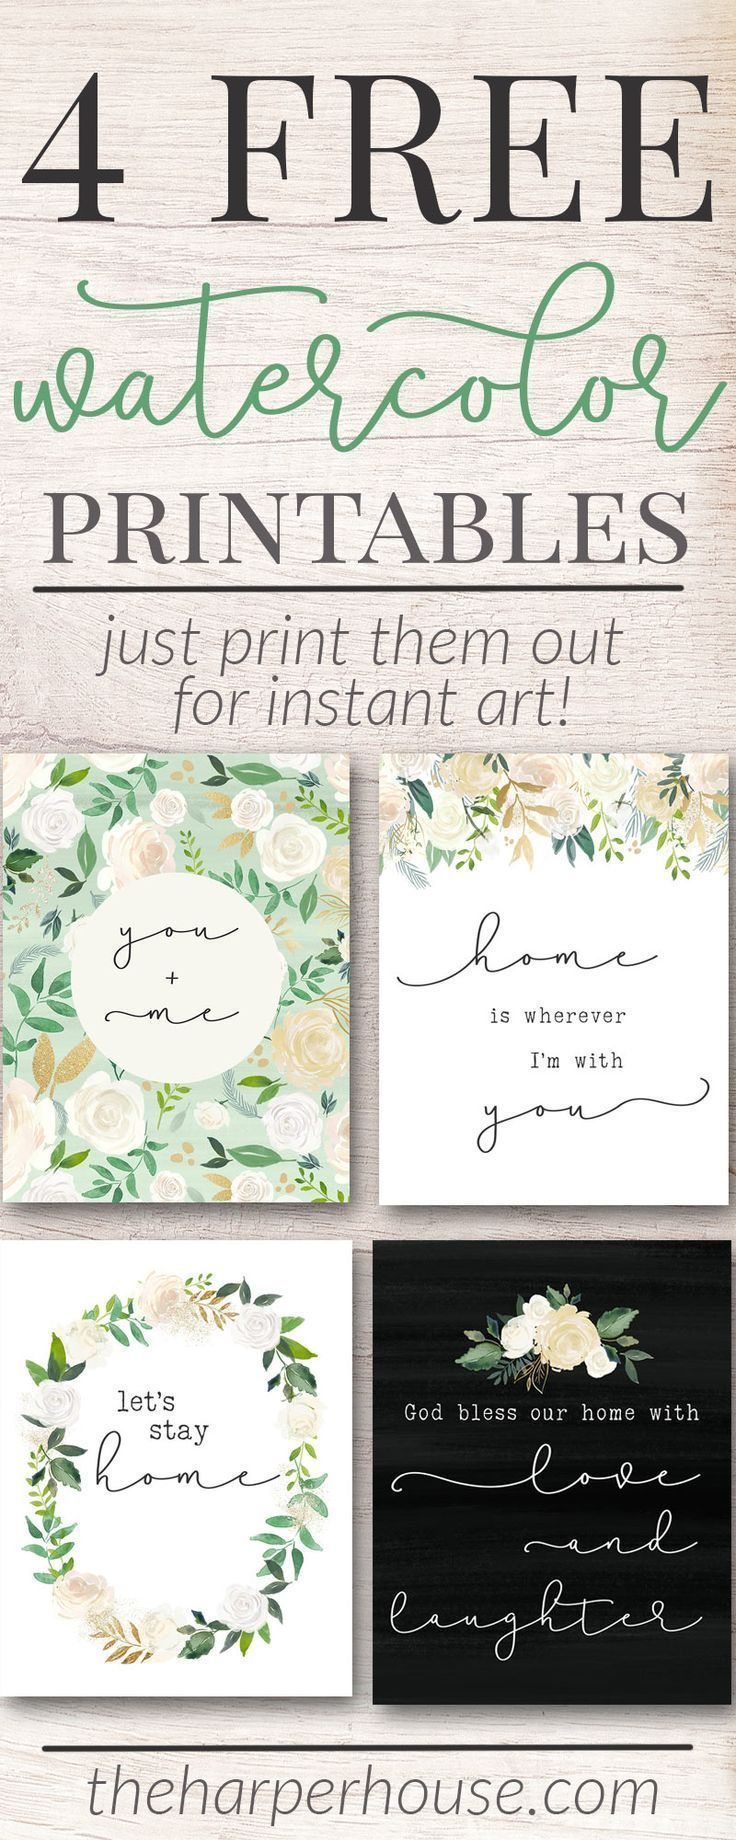 Free Watercolor Printables Grab This Set Of 4 Free Watercolor